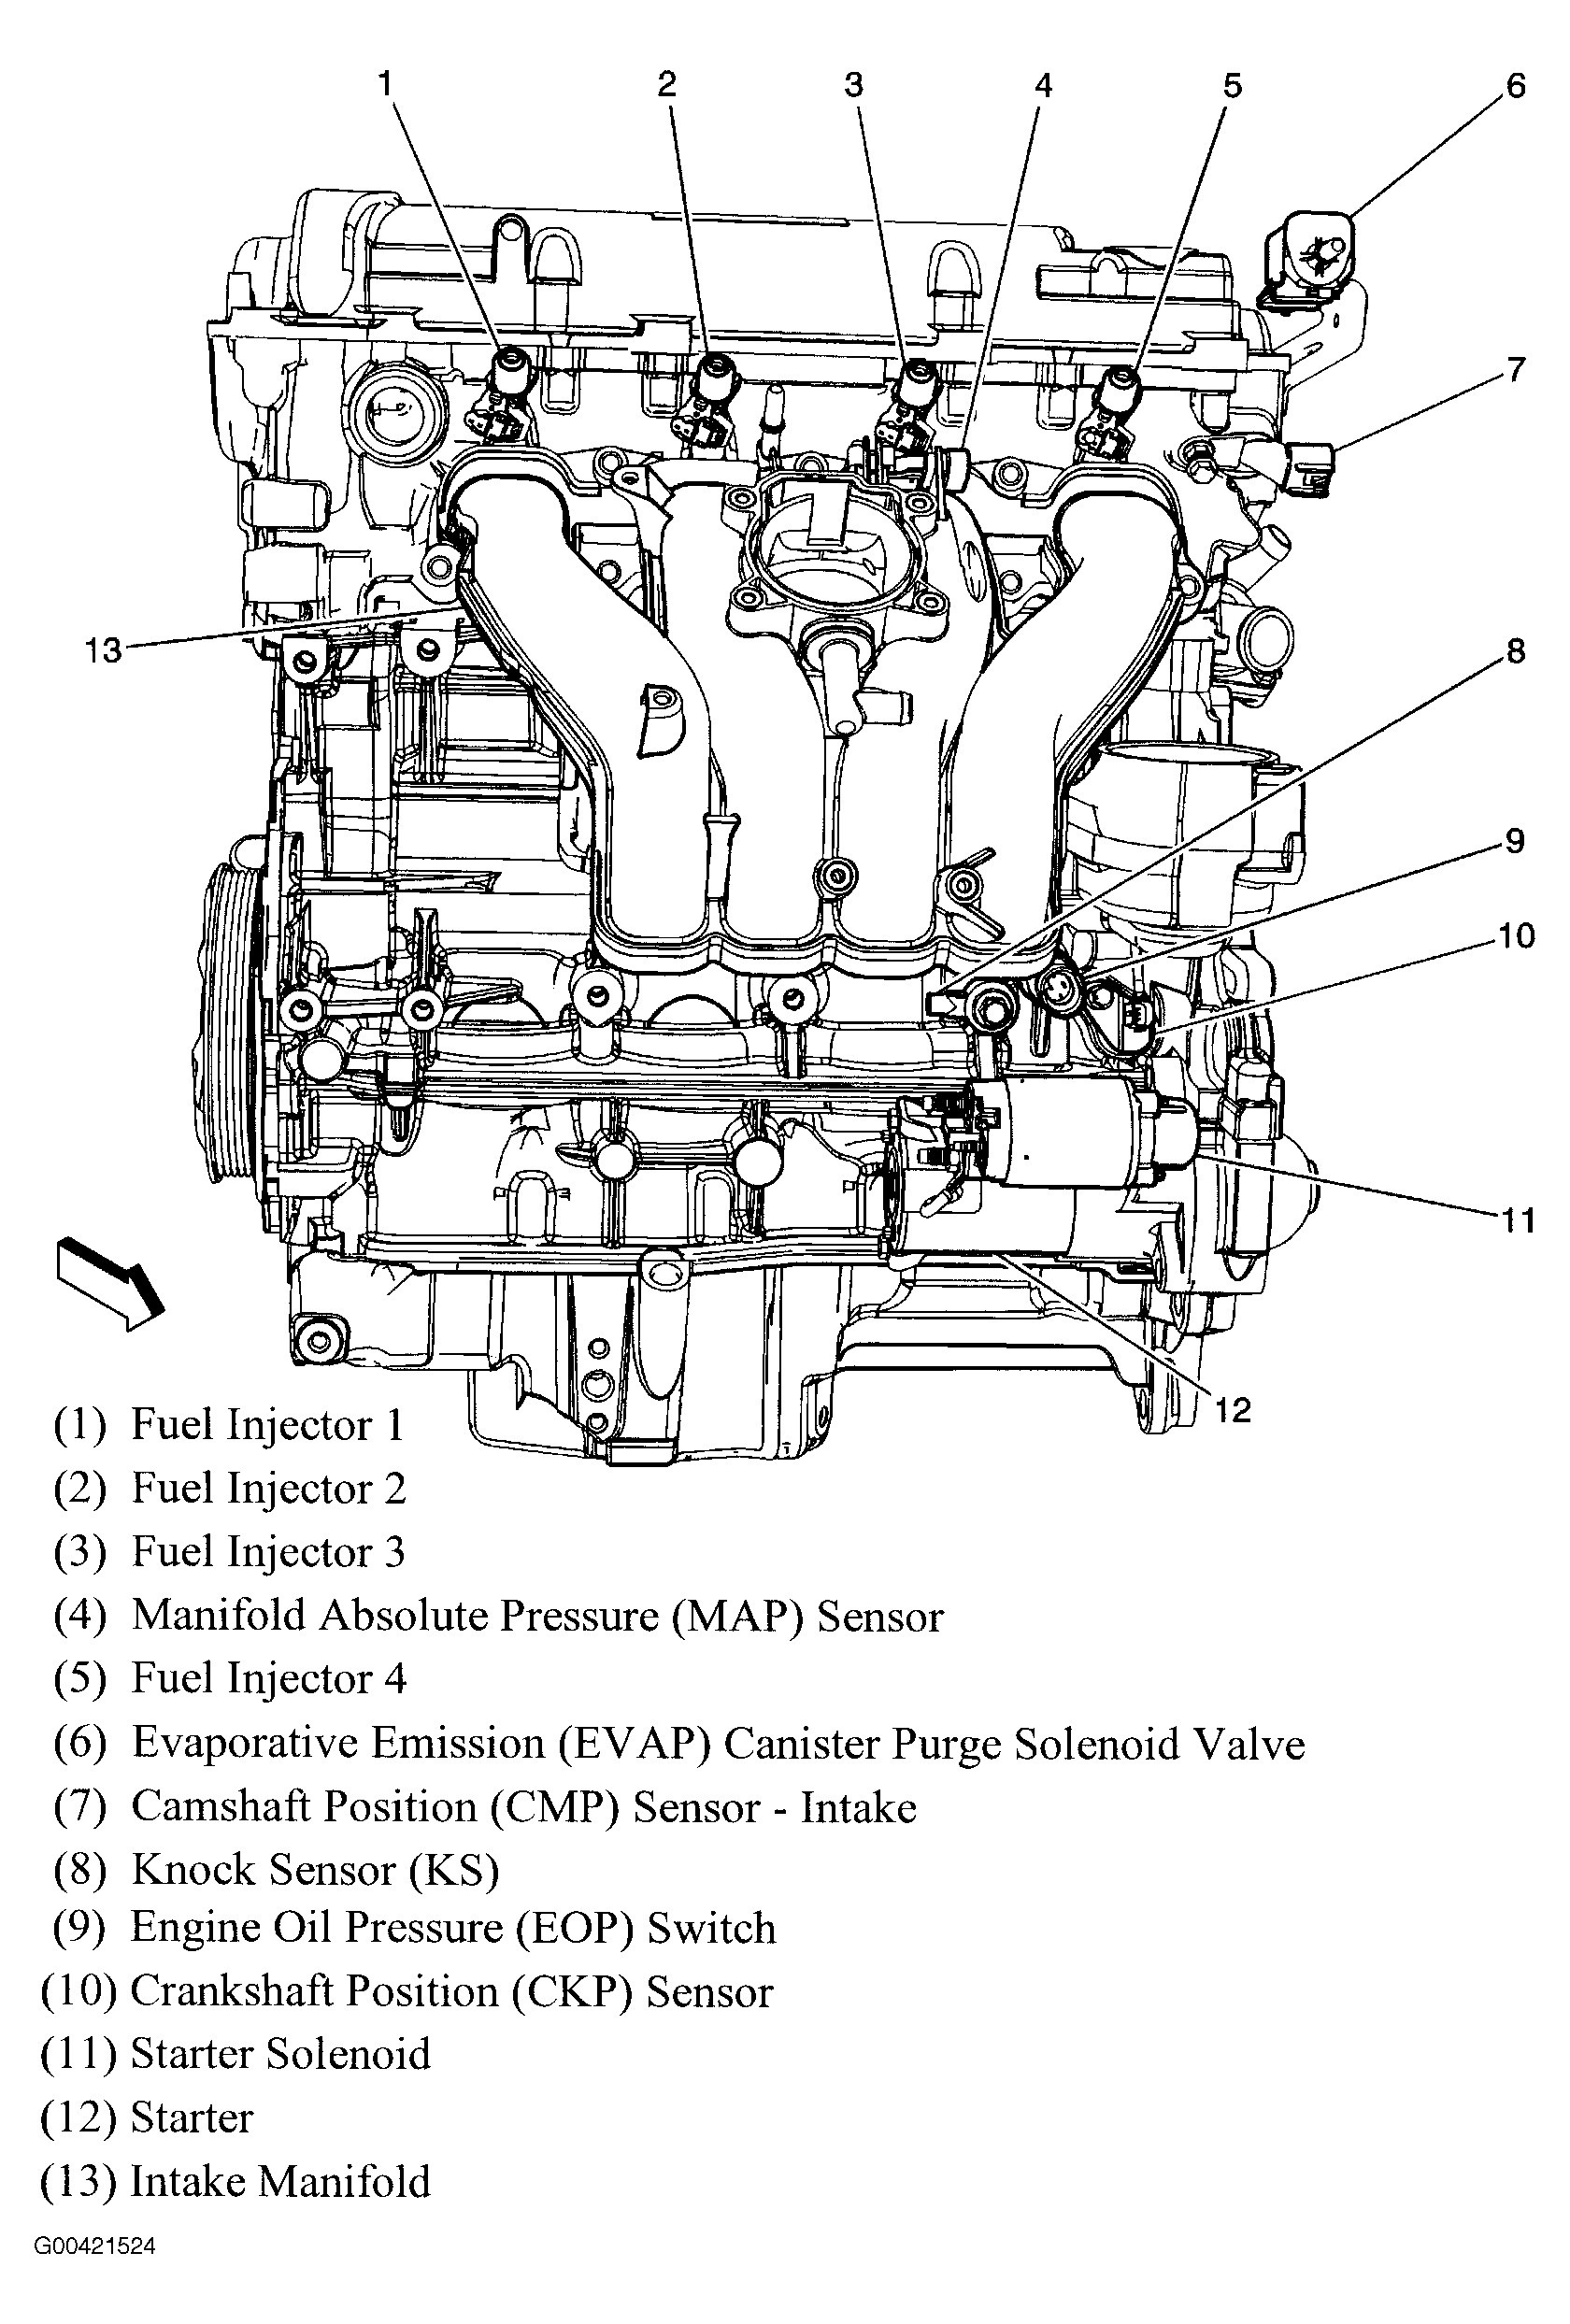 hight resolution of 1996 camaro engine diagram wiring diagram basic 96 camaro wiring diagram wiring diagram centre2011 camaro engine